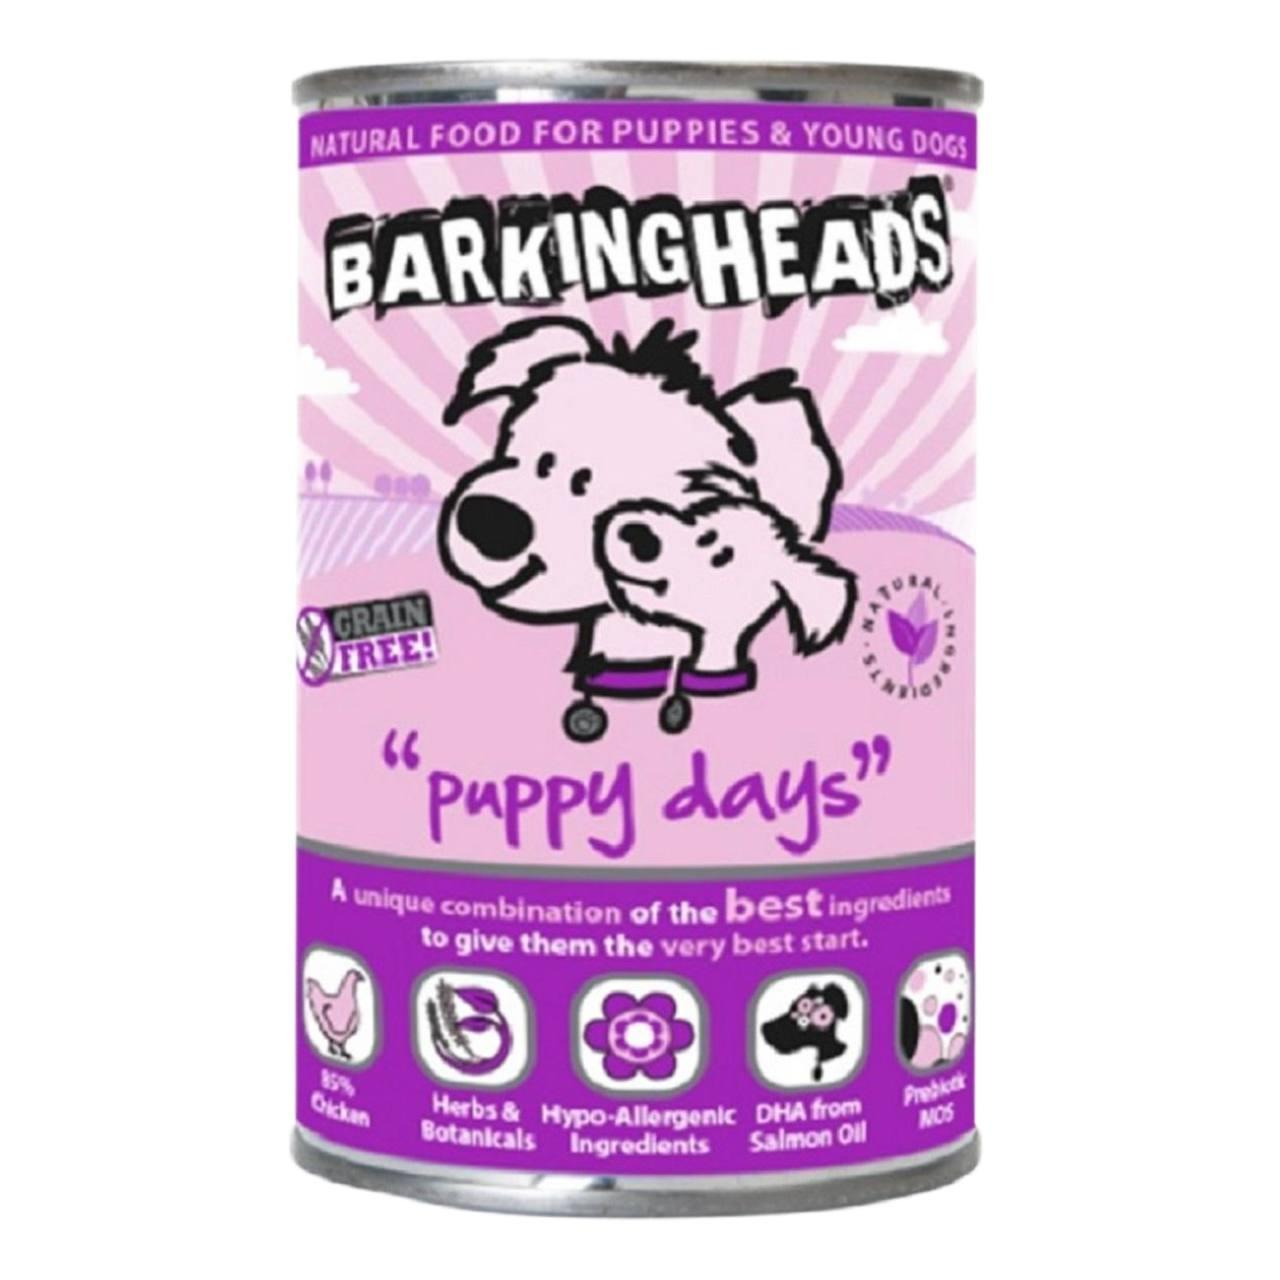 An image of Barking Heads Puppy Days